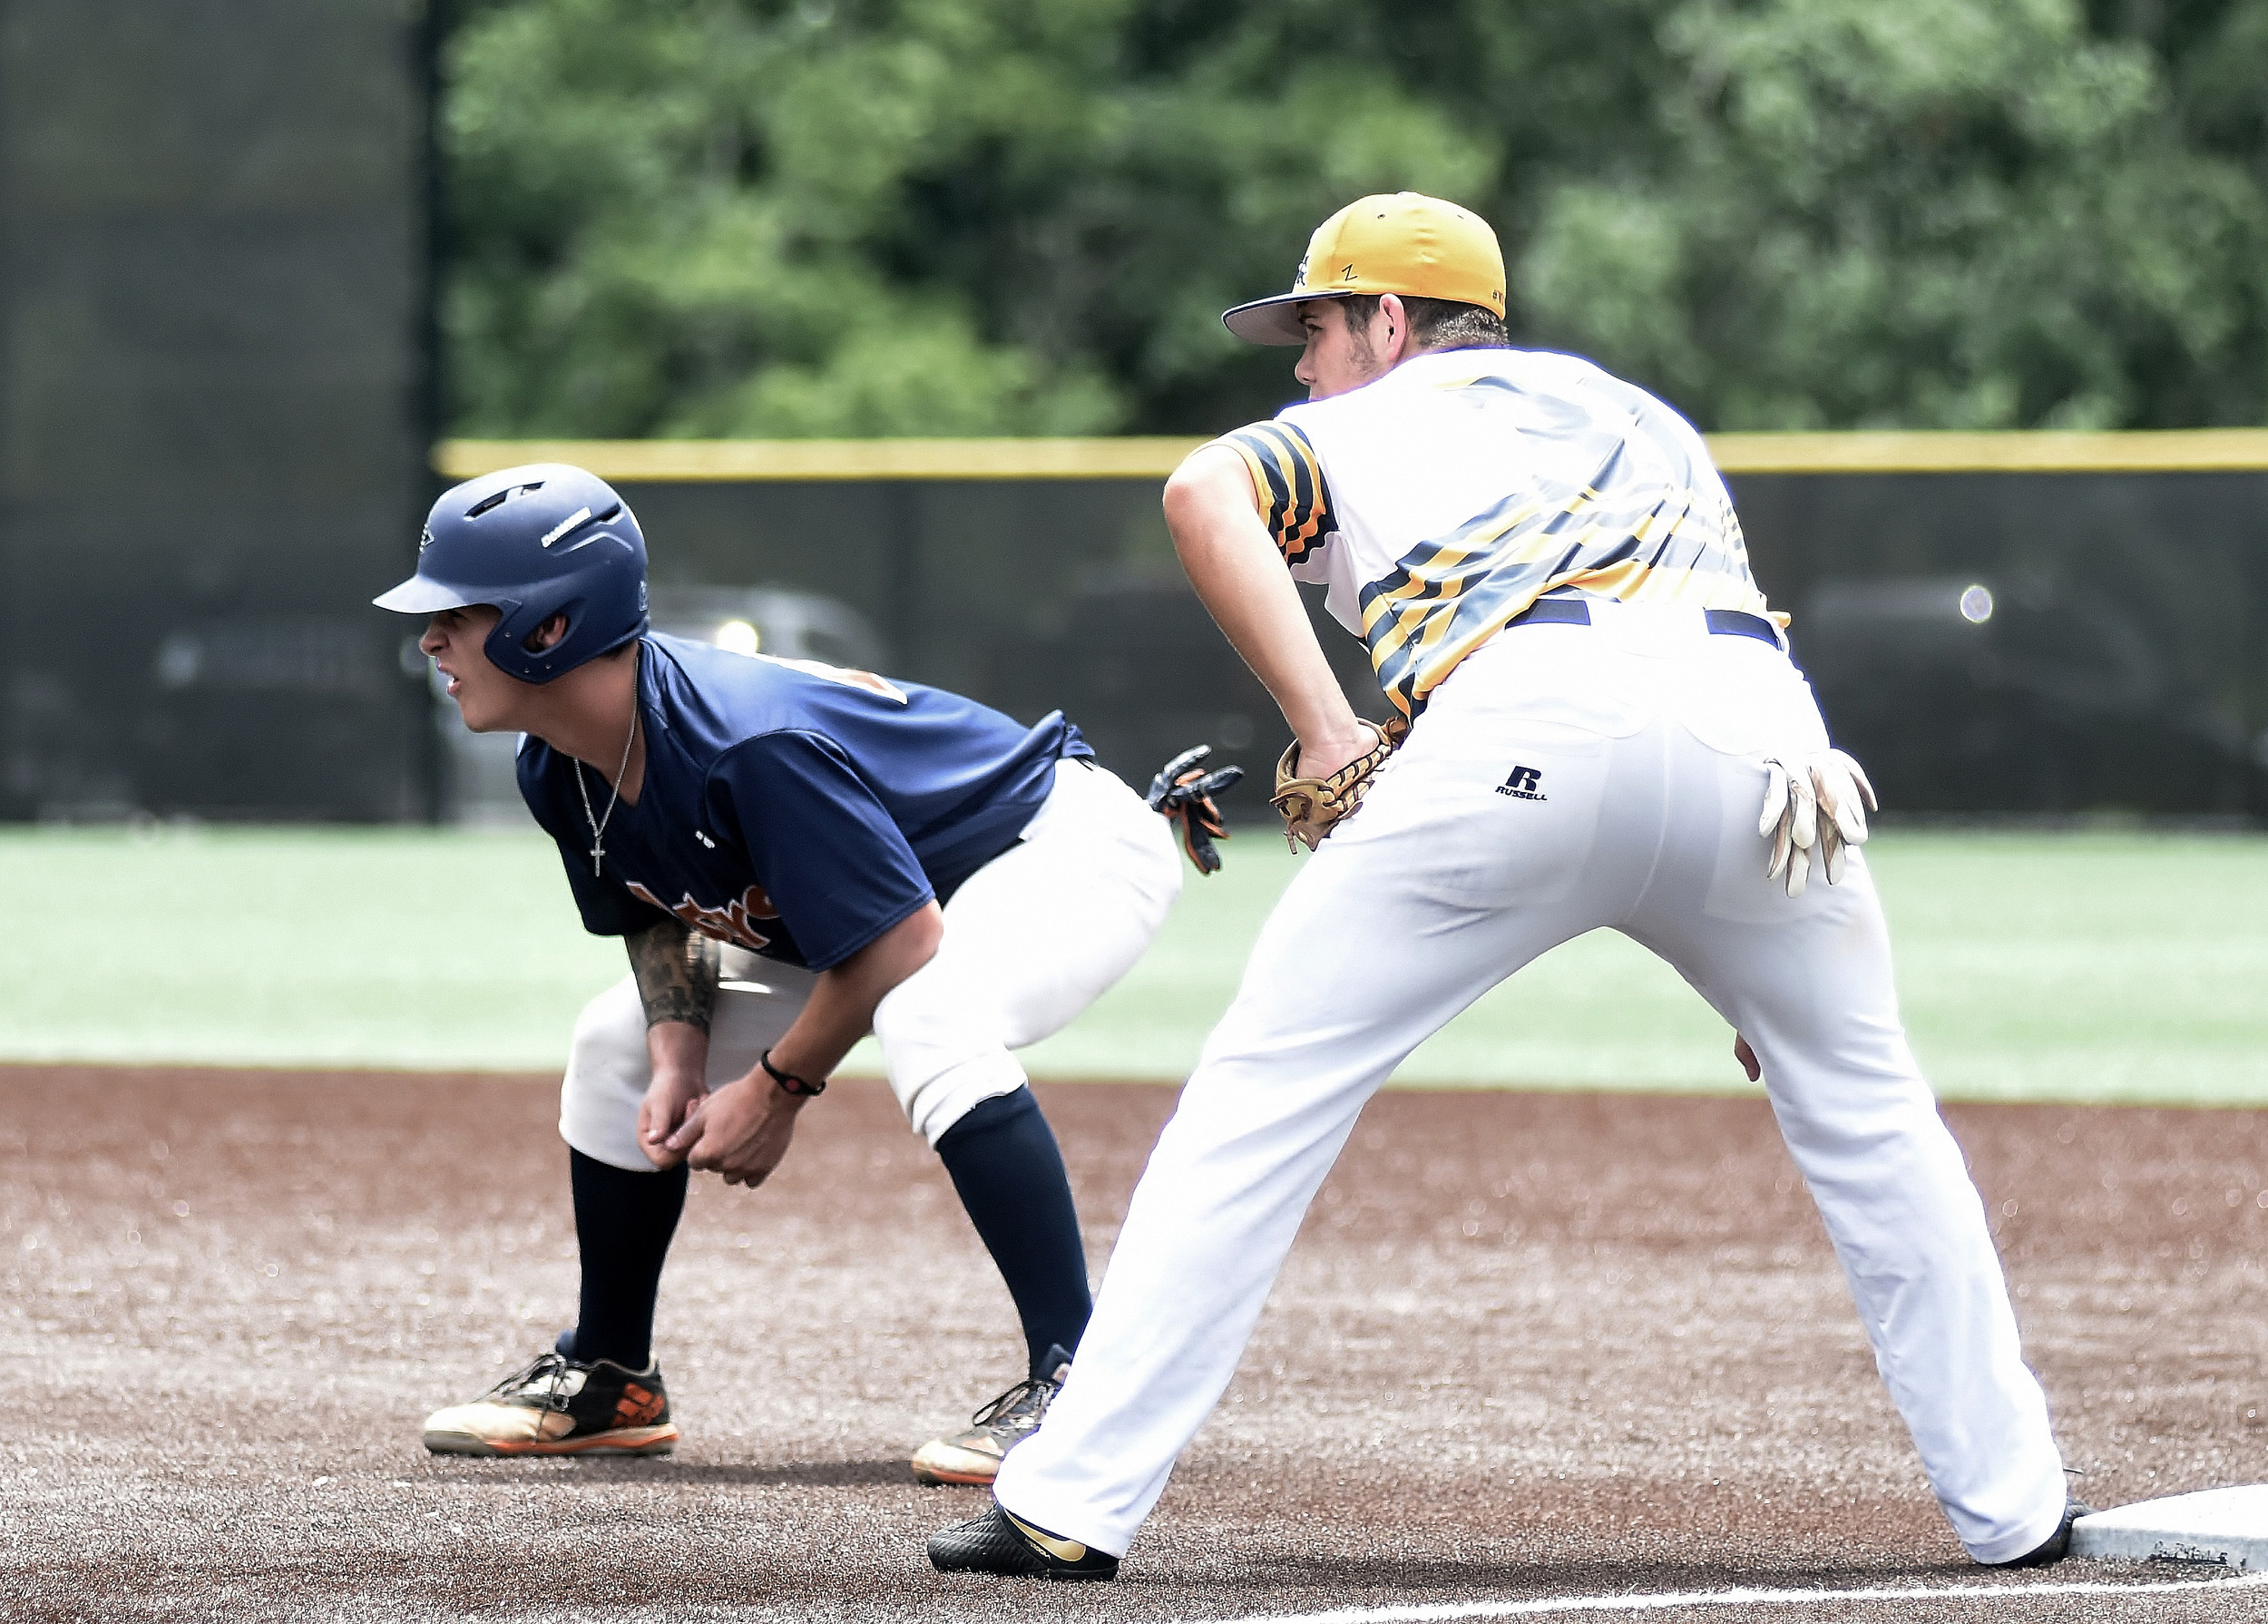 Cartersville High's J.P. Martin of the East Cobb Astros leads off first base during a pool-play game in the 2018 WWBA 17U National Championship on Monday at LakePoint.